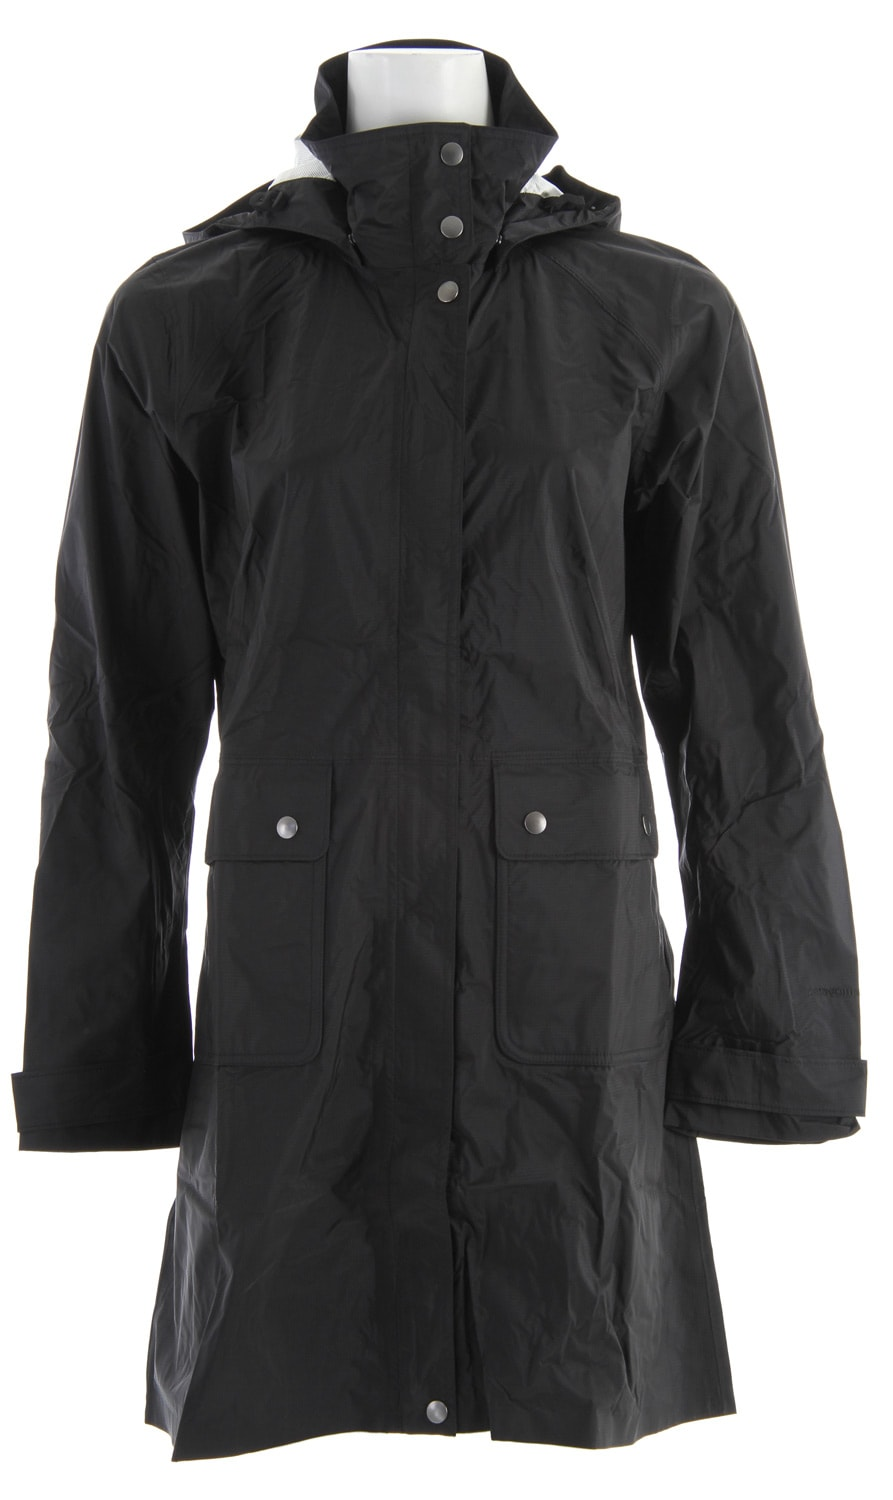 Patagonia Torrentshell Trench Coat Womens